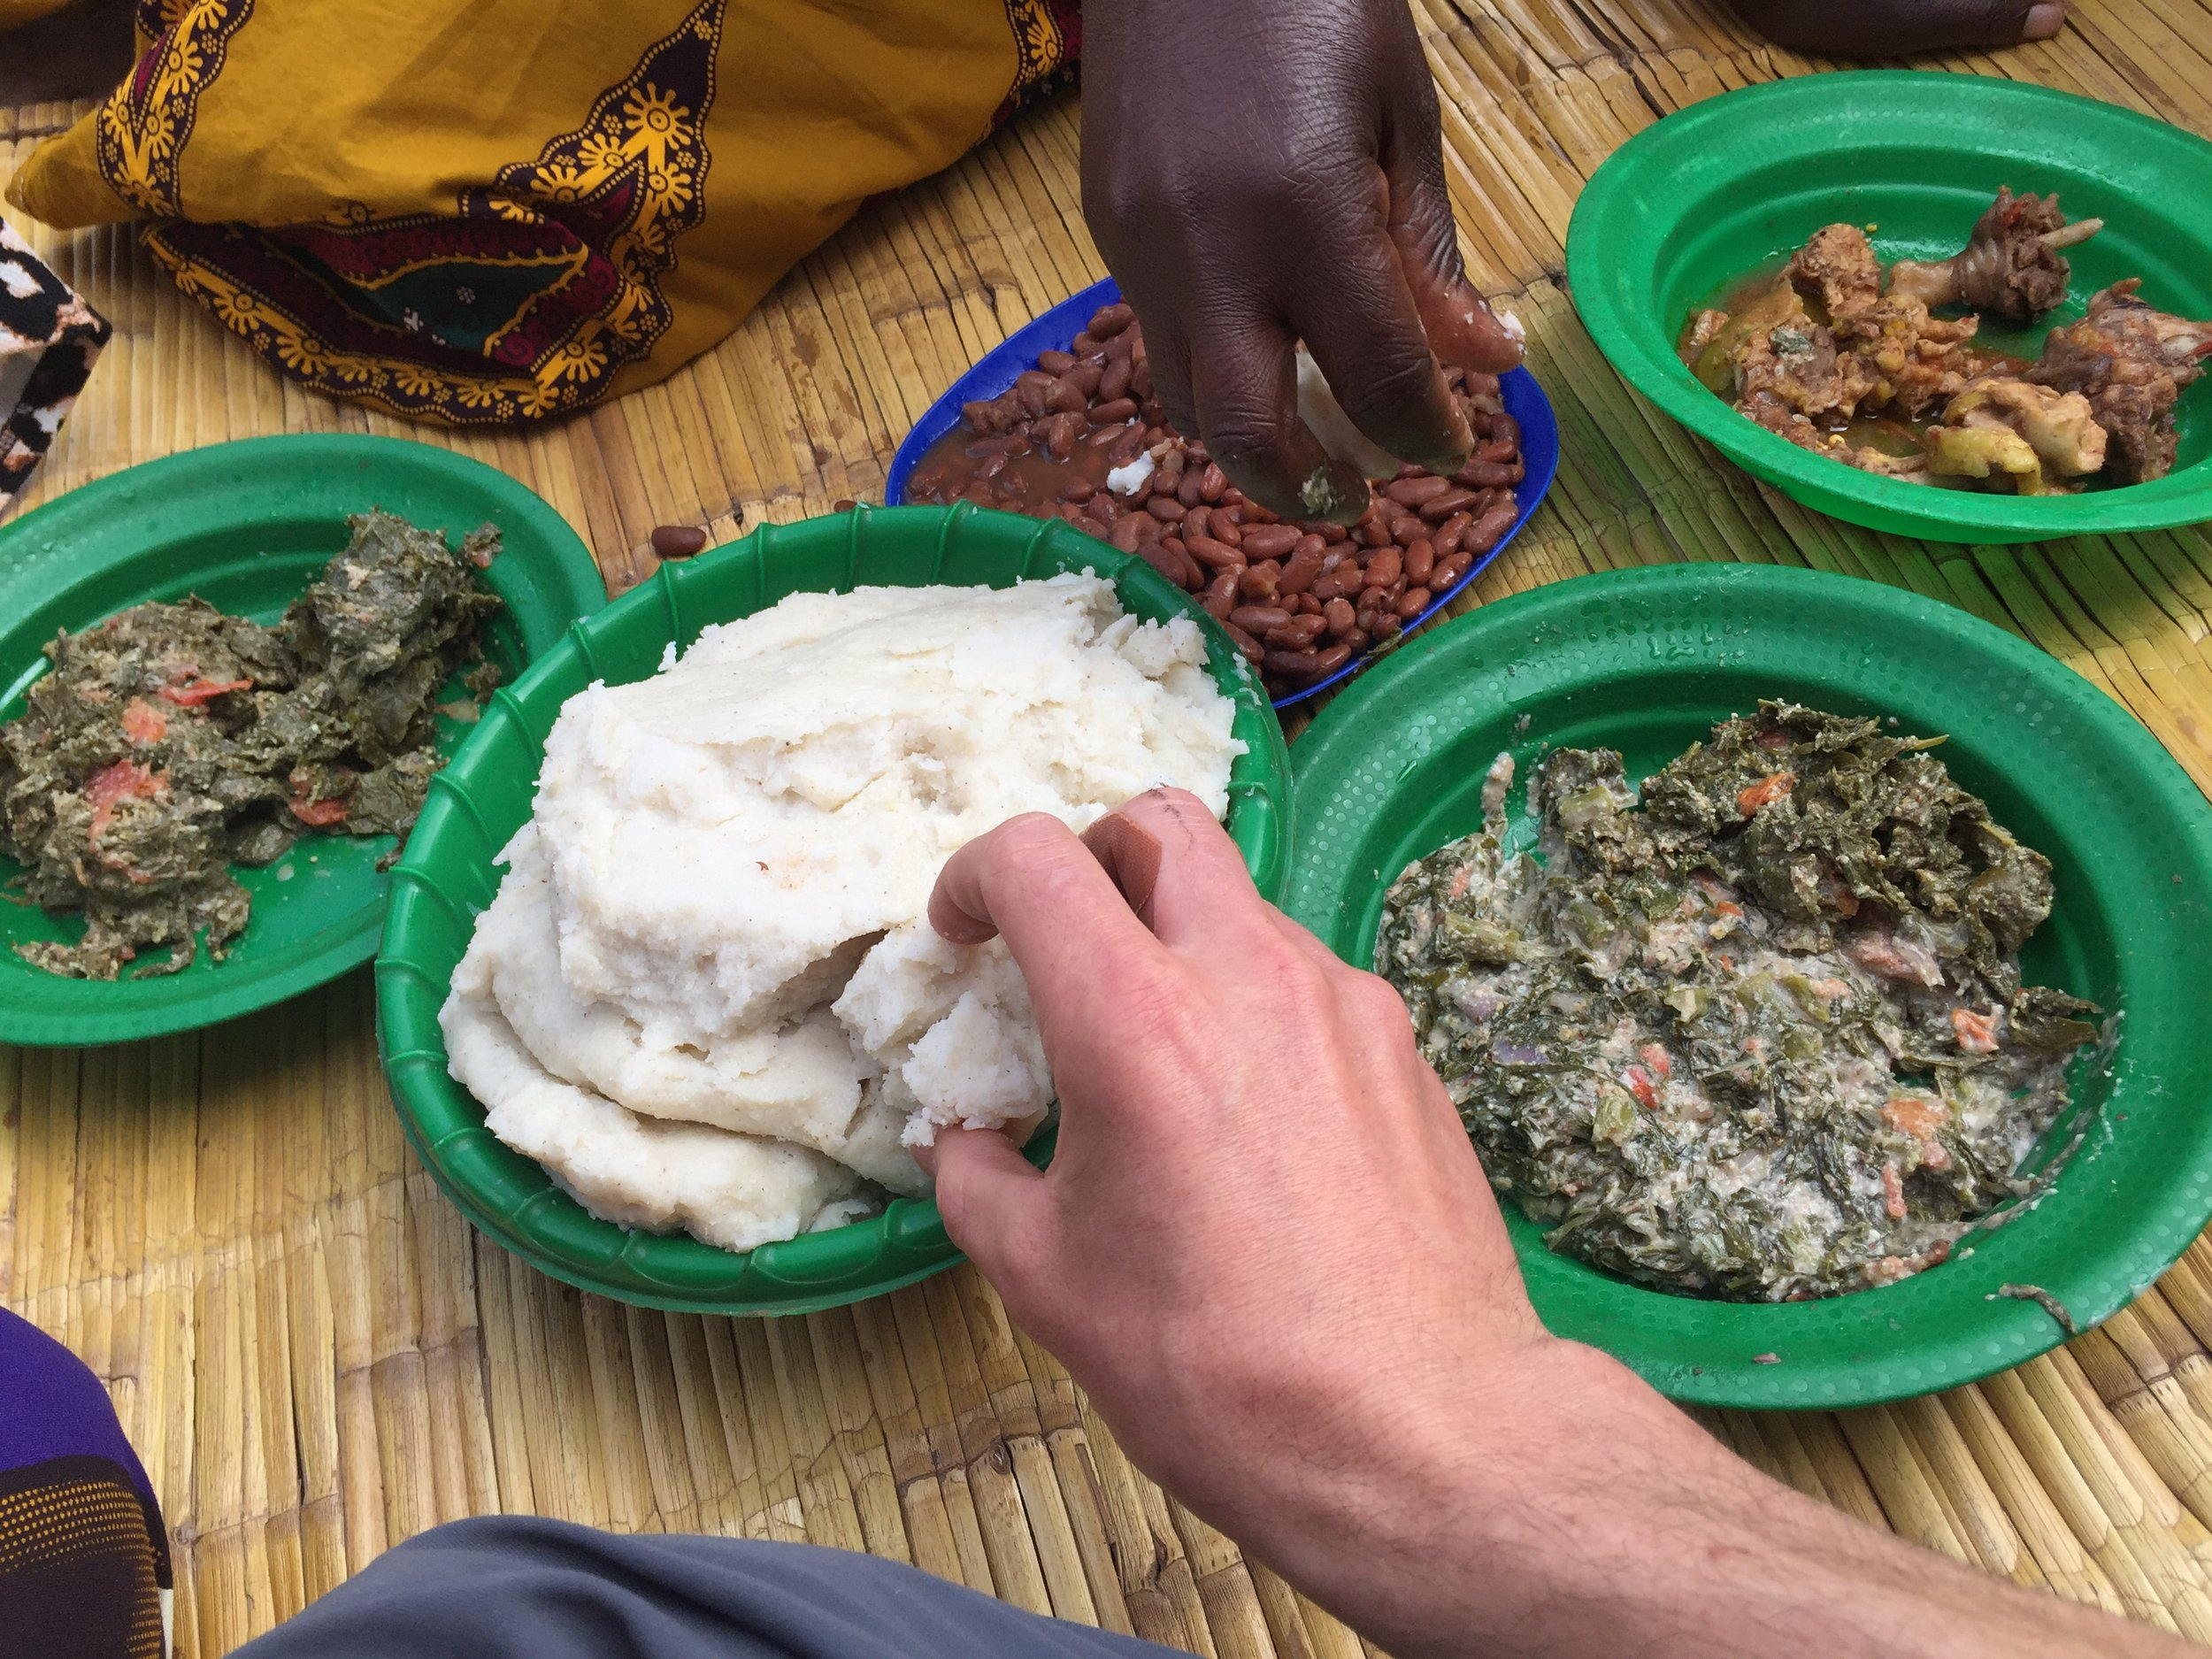 A traditional Malawian meal, eaten by hand out of shared plates. It was delicious, and the chicken in the upper right was walking around when we arrived. The lower right is  Mkhwani , the dish cooked with pumpkin leaves, peanut flour and tomatoes.